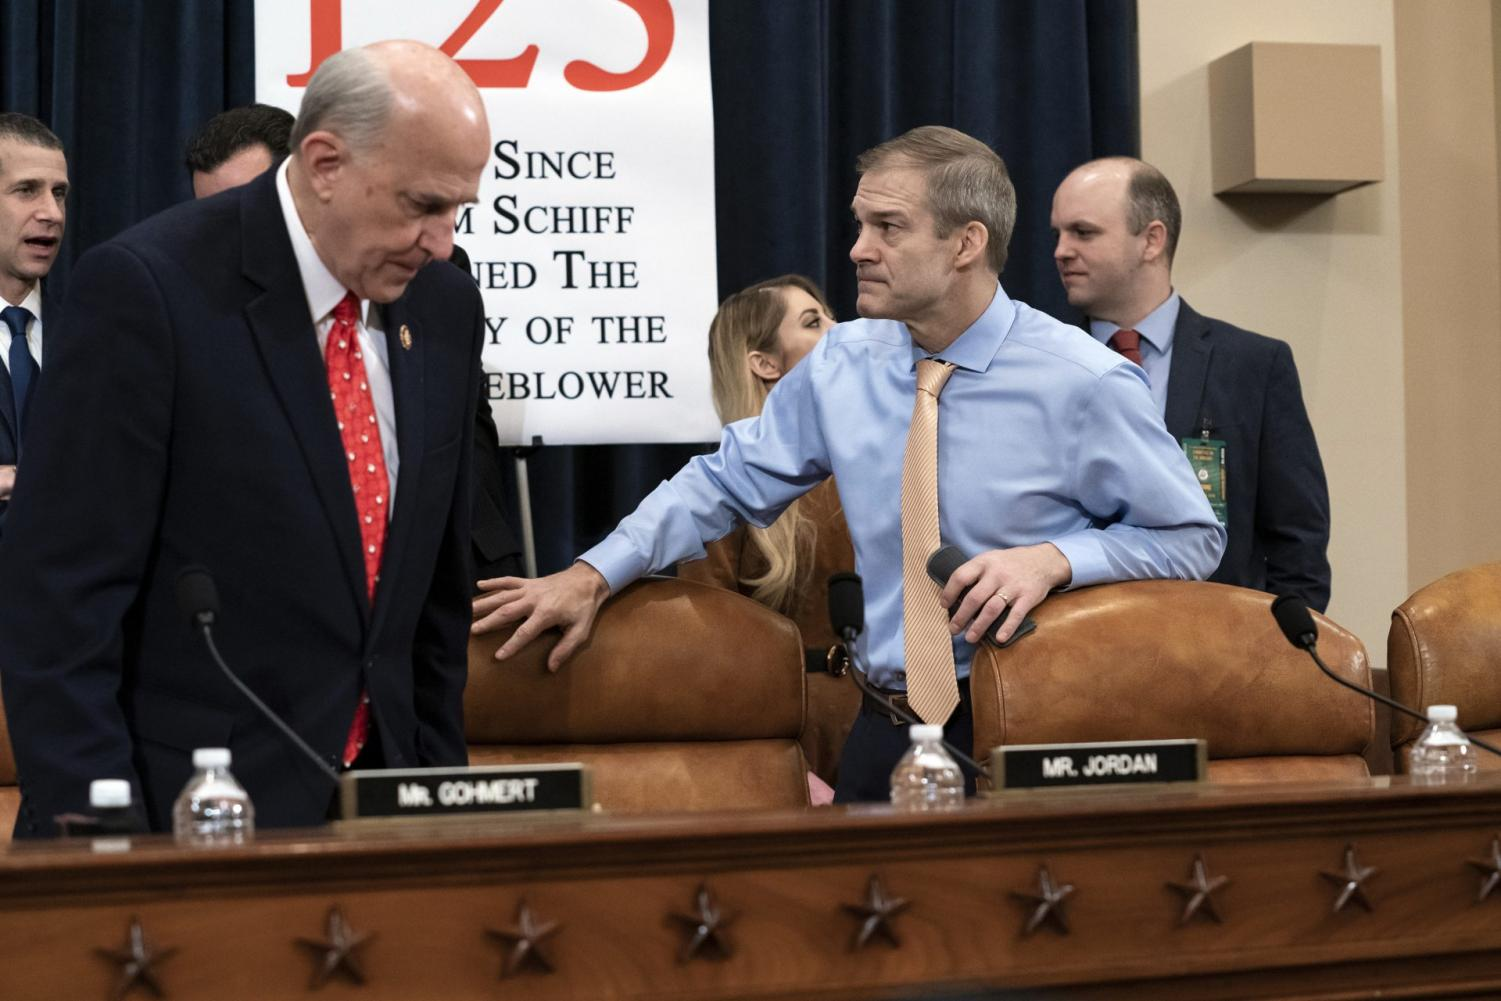 Rep. Louie Gohmert, R-Texas, left, and Rep. Jim Jordan, R-Ohio, arrive for the vote on two articles of impeachment against President Donald Trump, Friday, Dec. 13, 2019, on Capitol Hill in Washington.